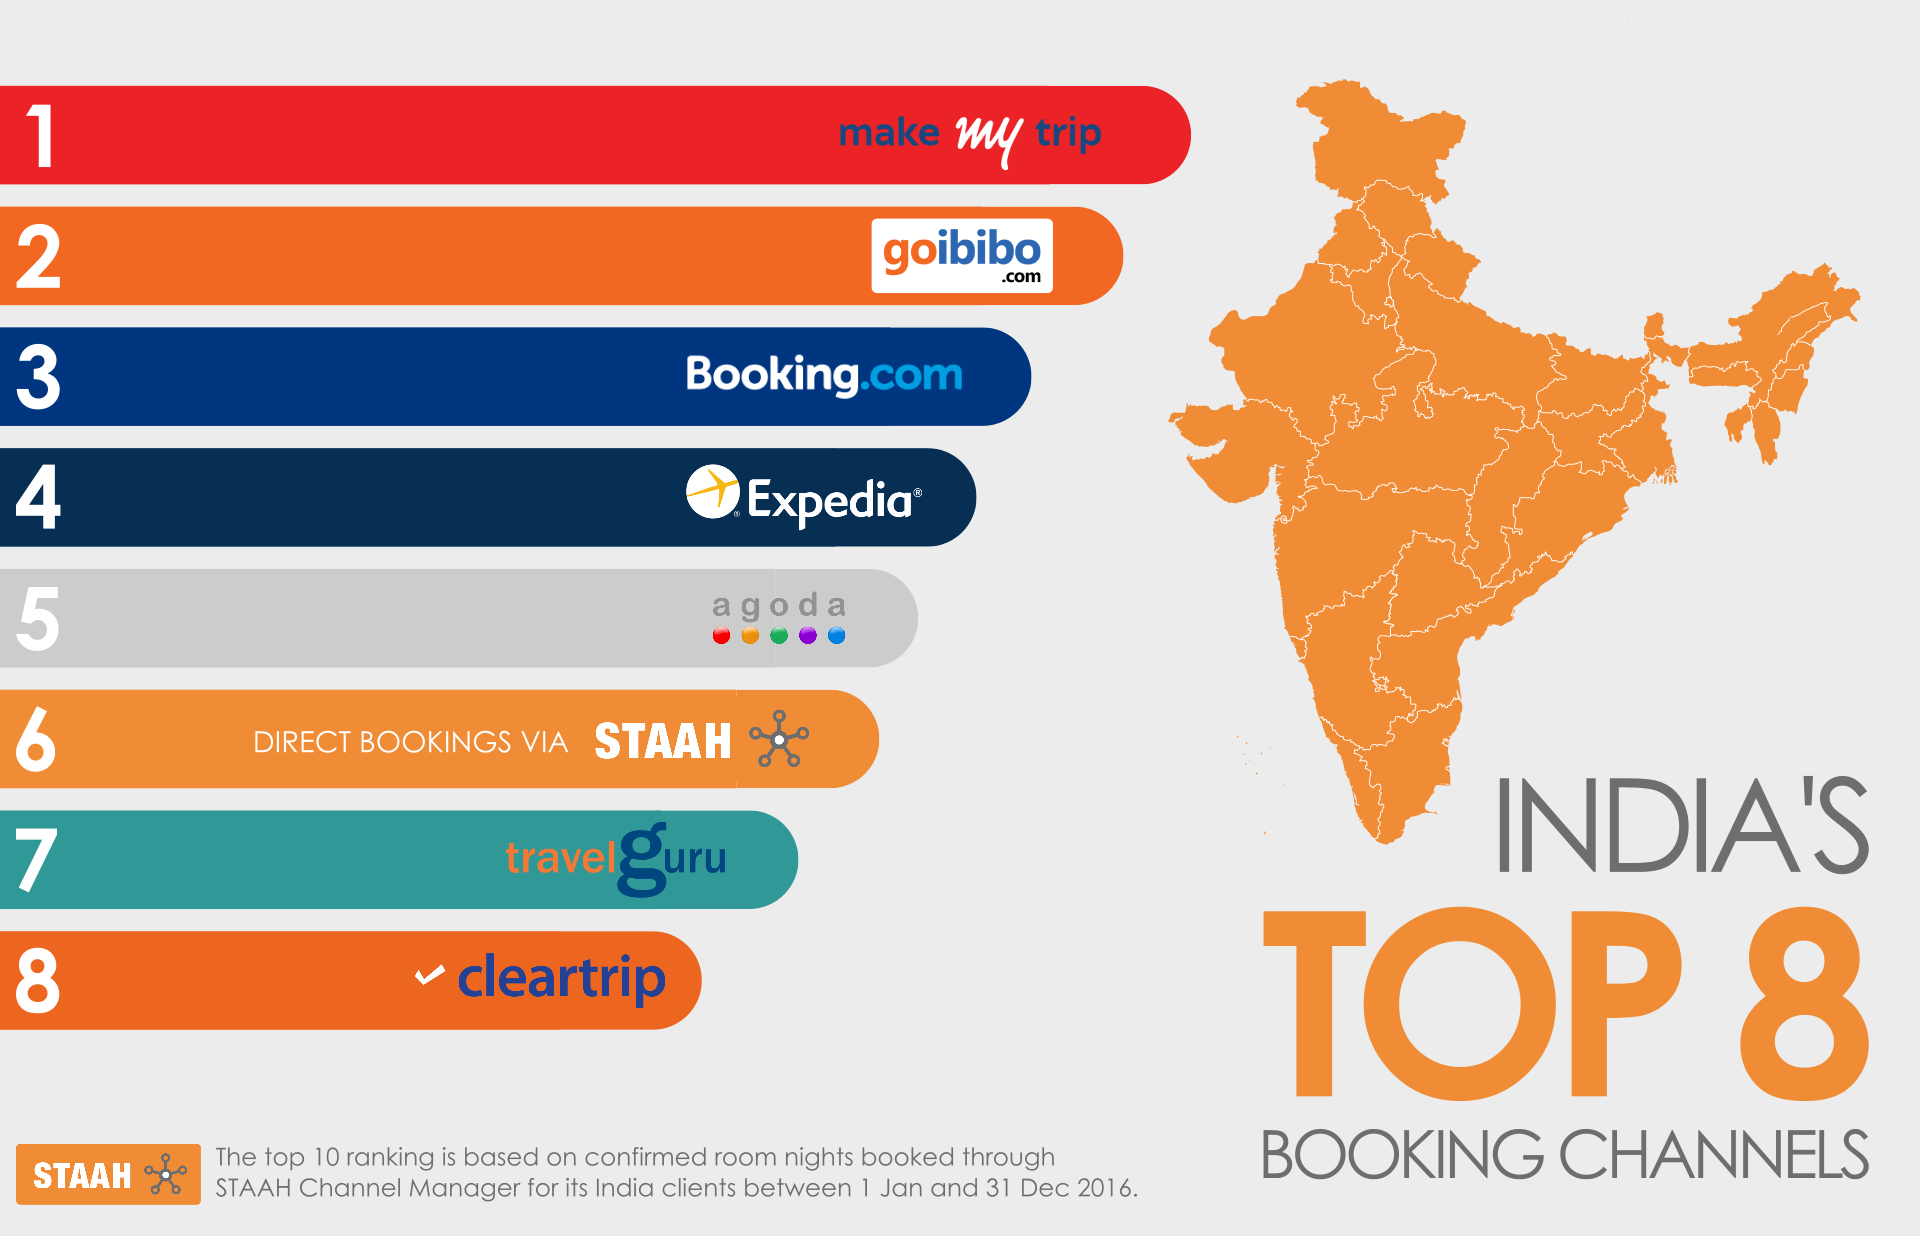 India's Top 8 Booking Channels